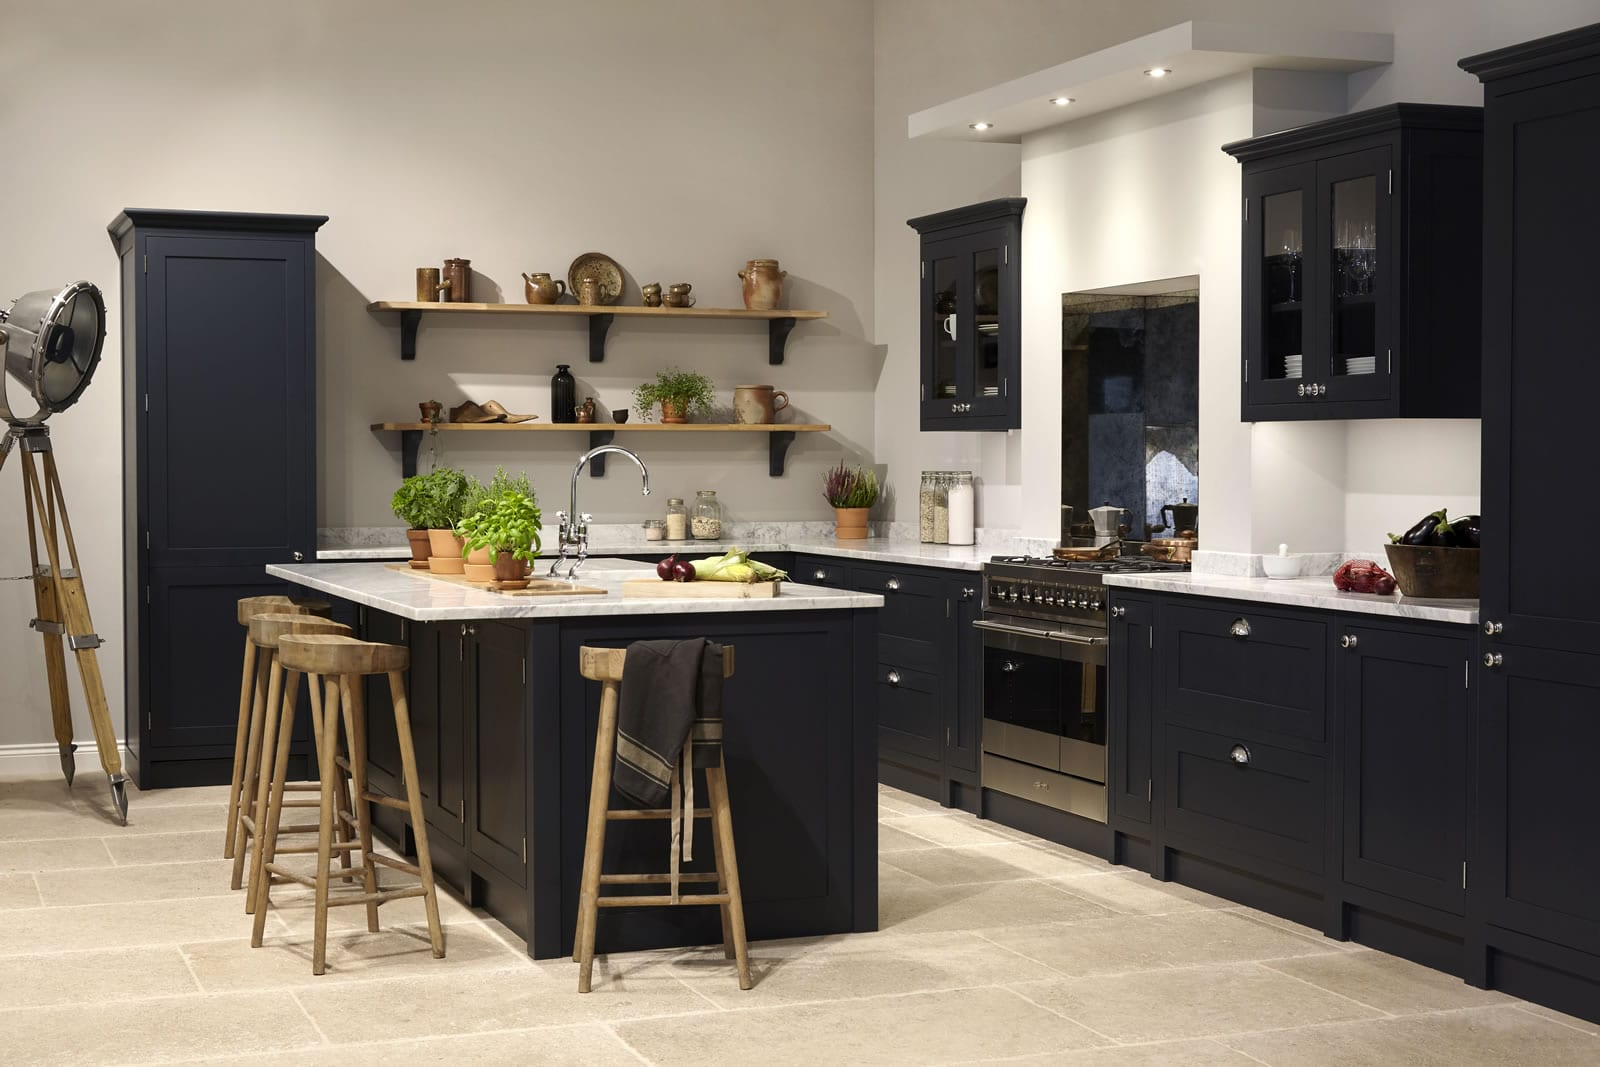 Navy Shaker kitchen showroom with white stone worktop and feature island